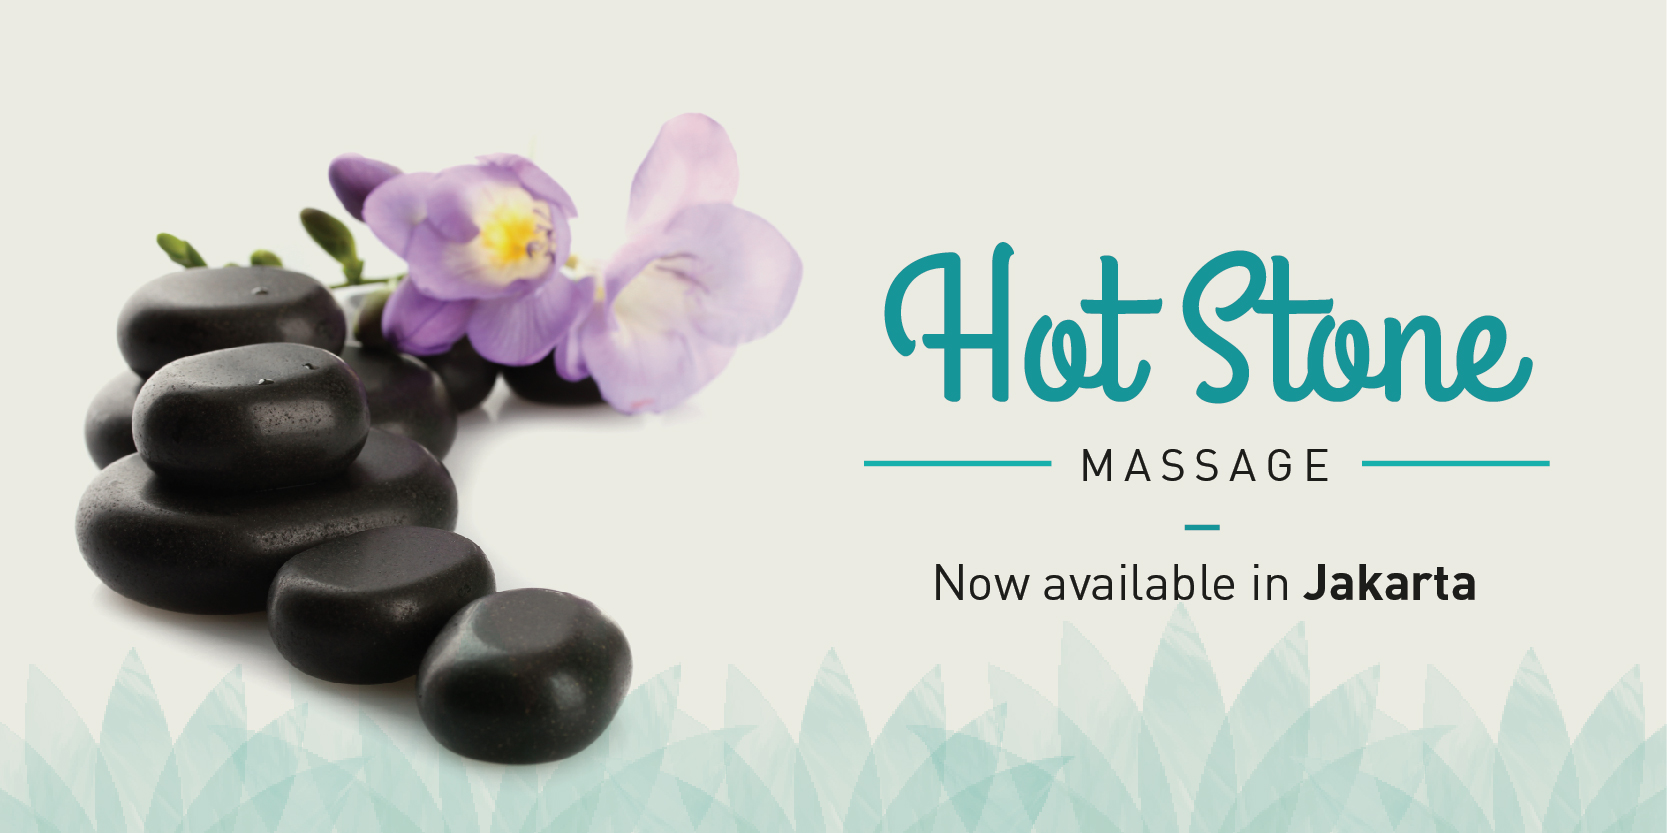 GO-MASSAGE Hadirkan Layanan Hot Stone Massage